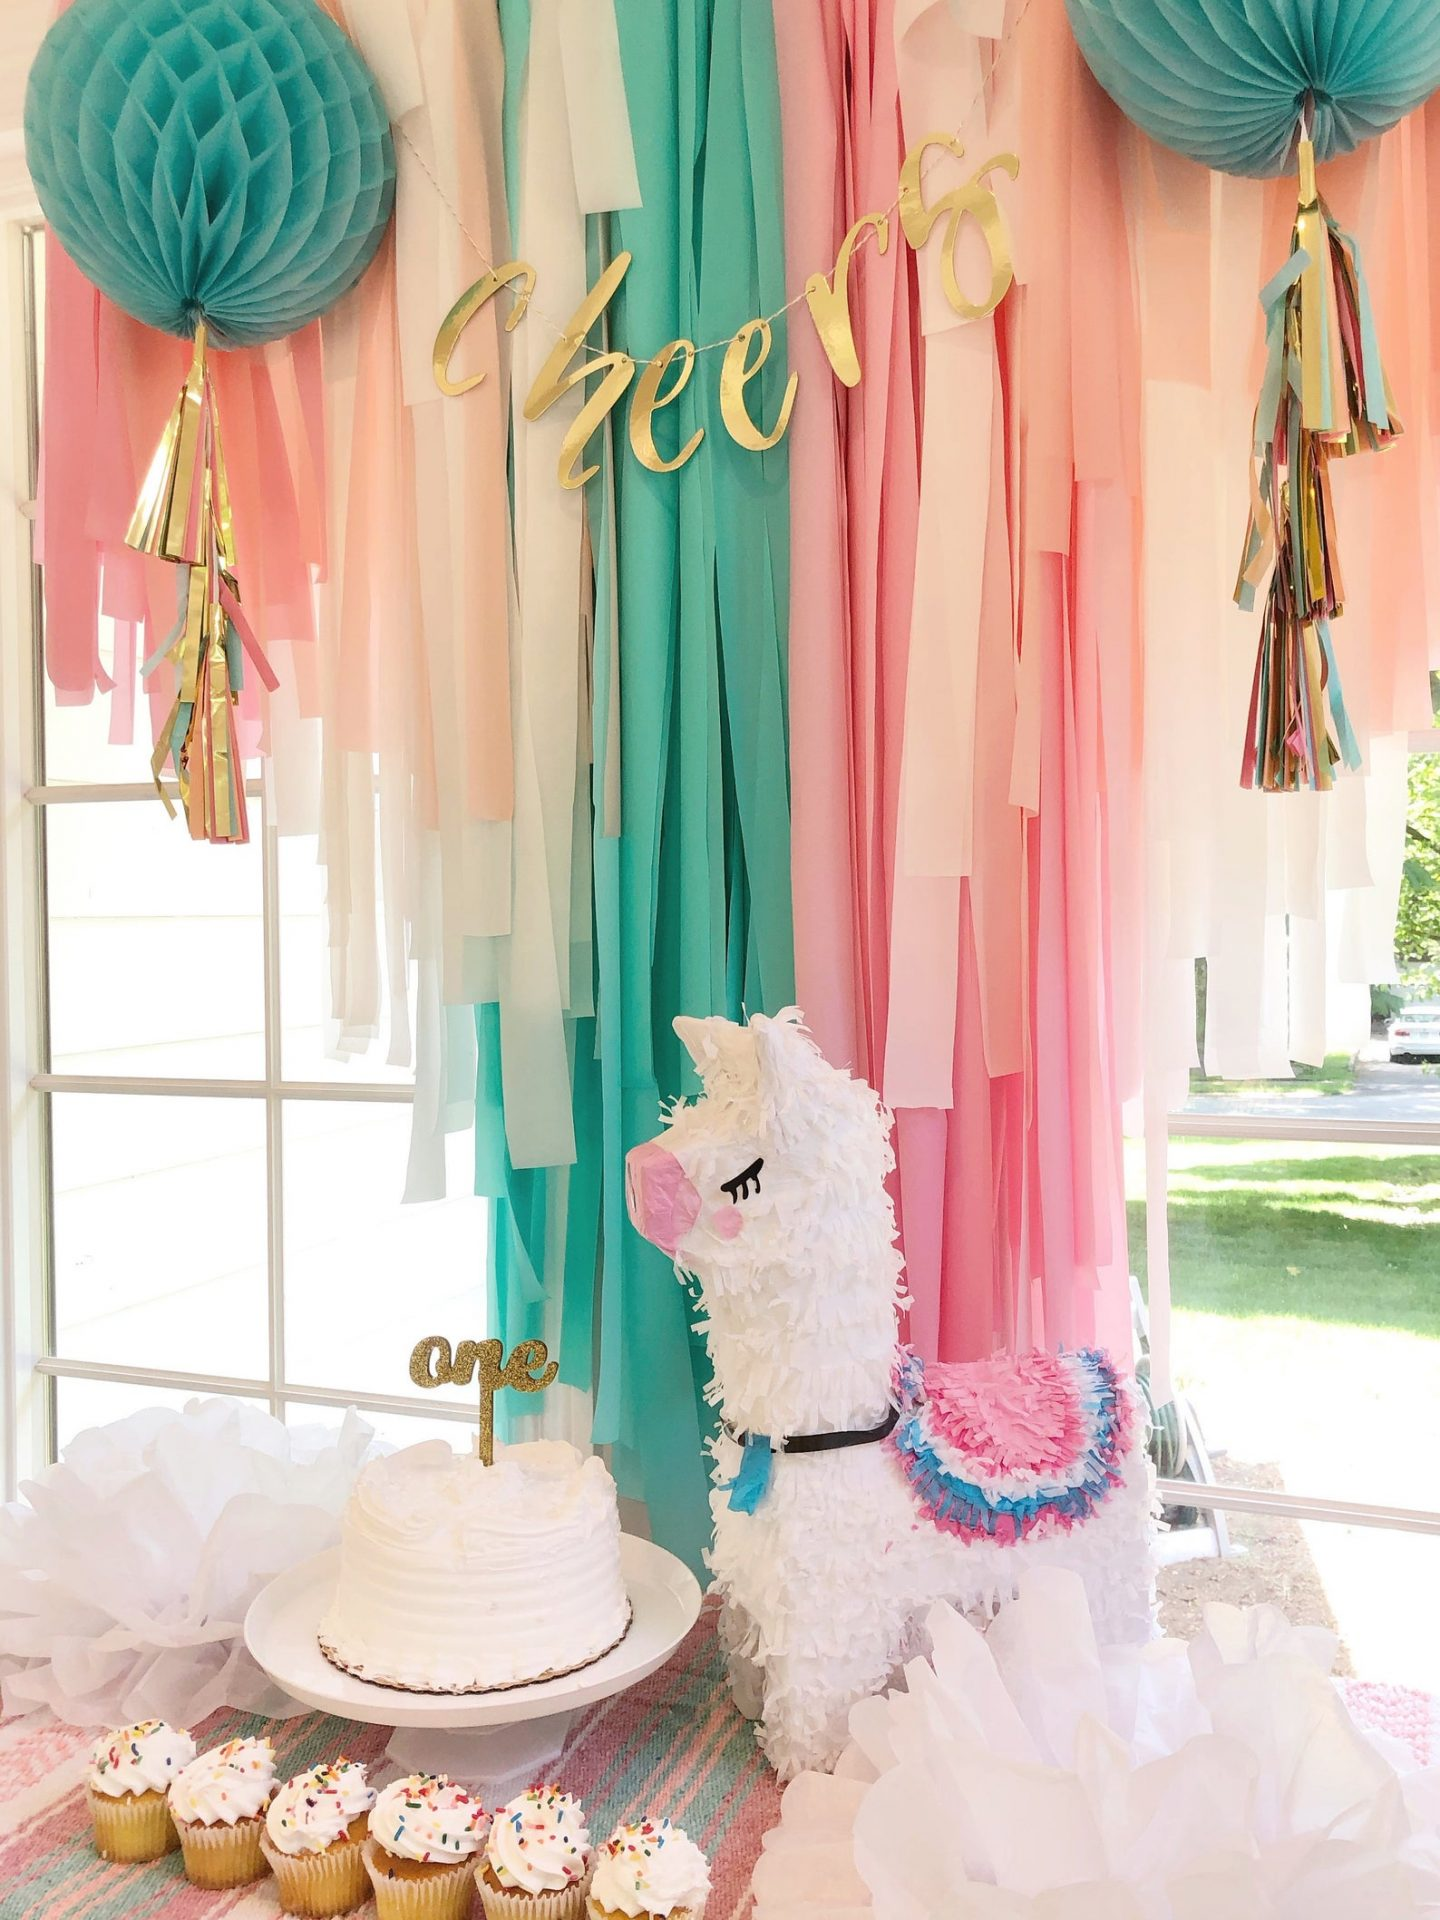 Turquoise-pink llama fringe curtain for a birthday party